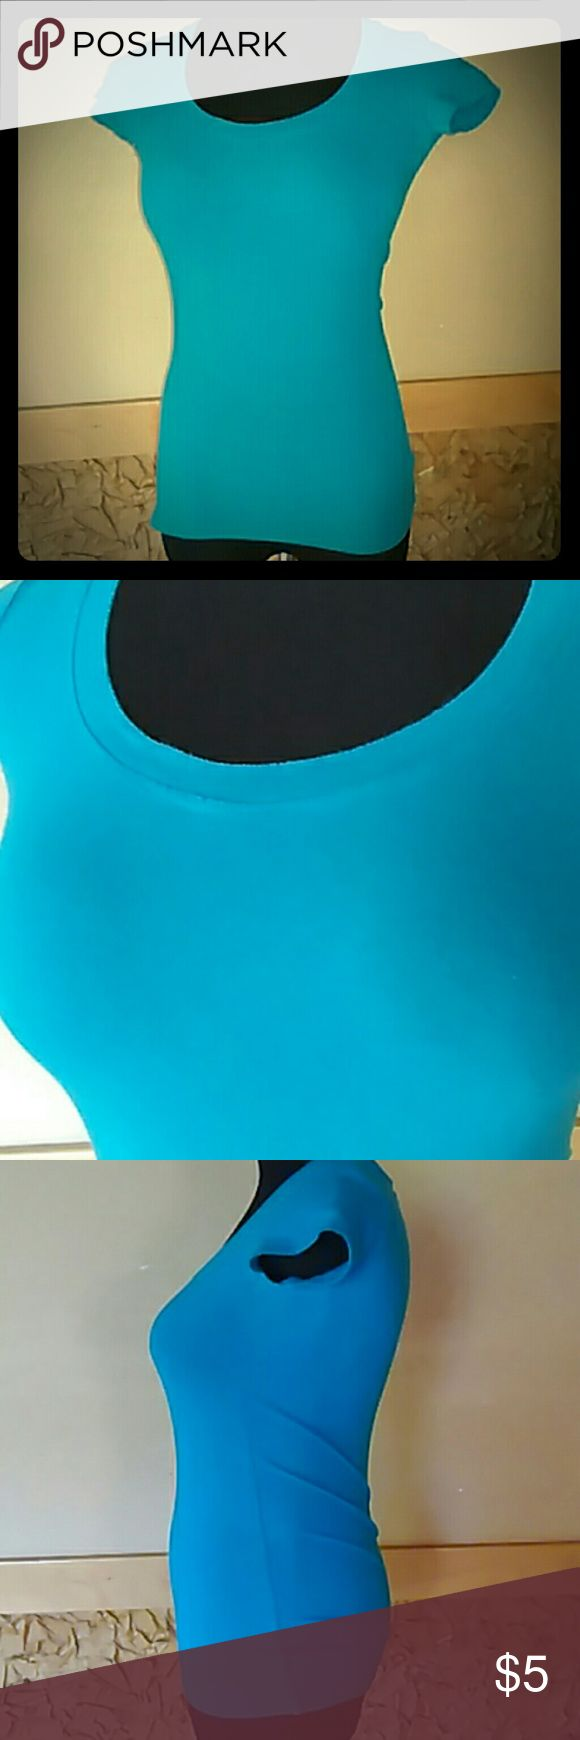 Teal Wet Seal t-shirt Teal colored (cover photo is truest color) t-shirt in good condition Wet Seal Tops Tees - Short Sleeve